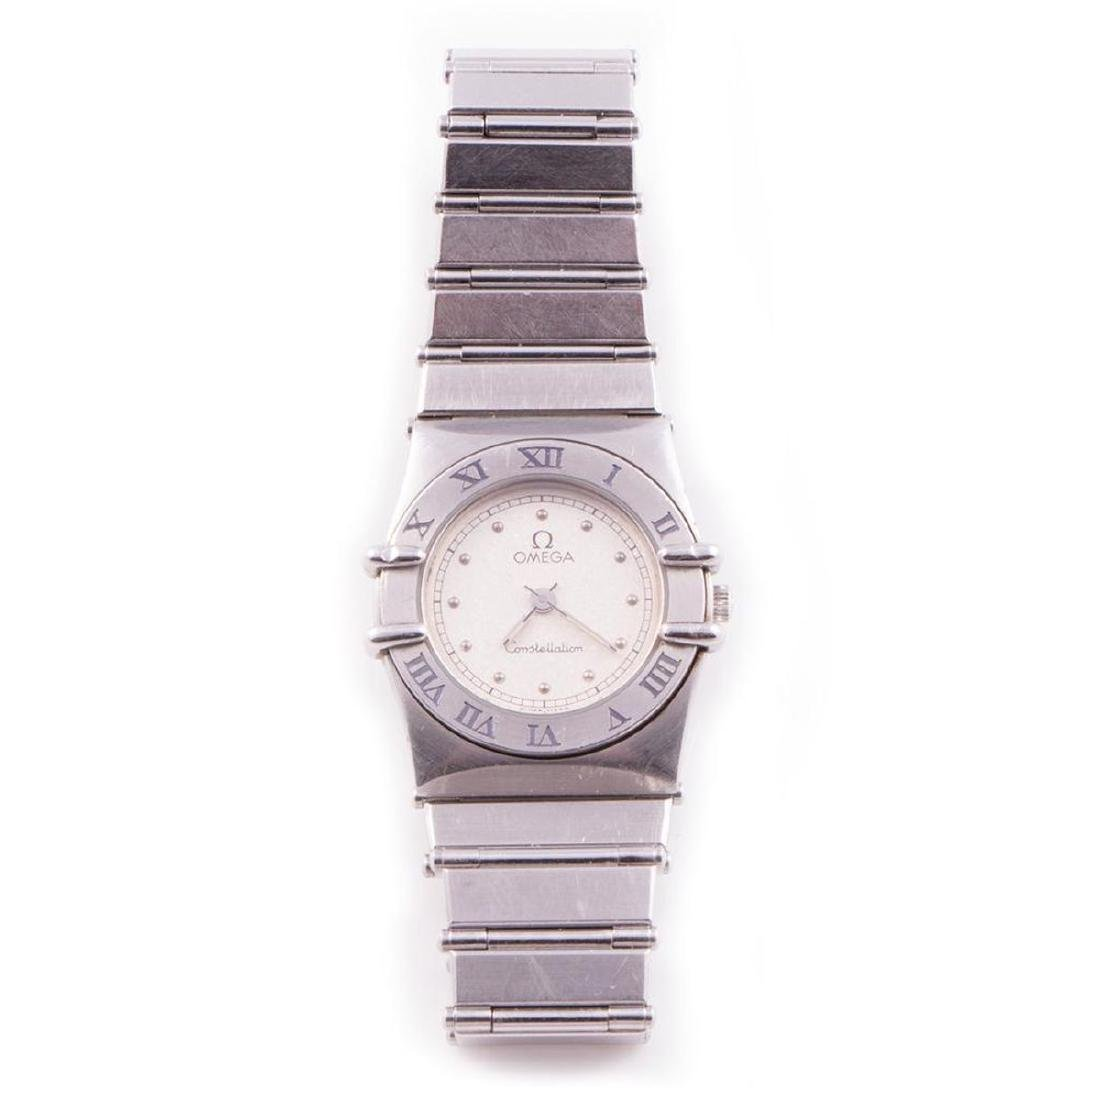 Omega Constellation ladies stainless steel wristwatch